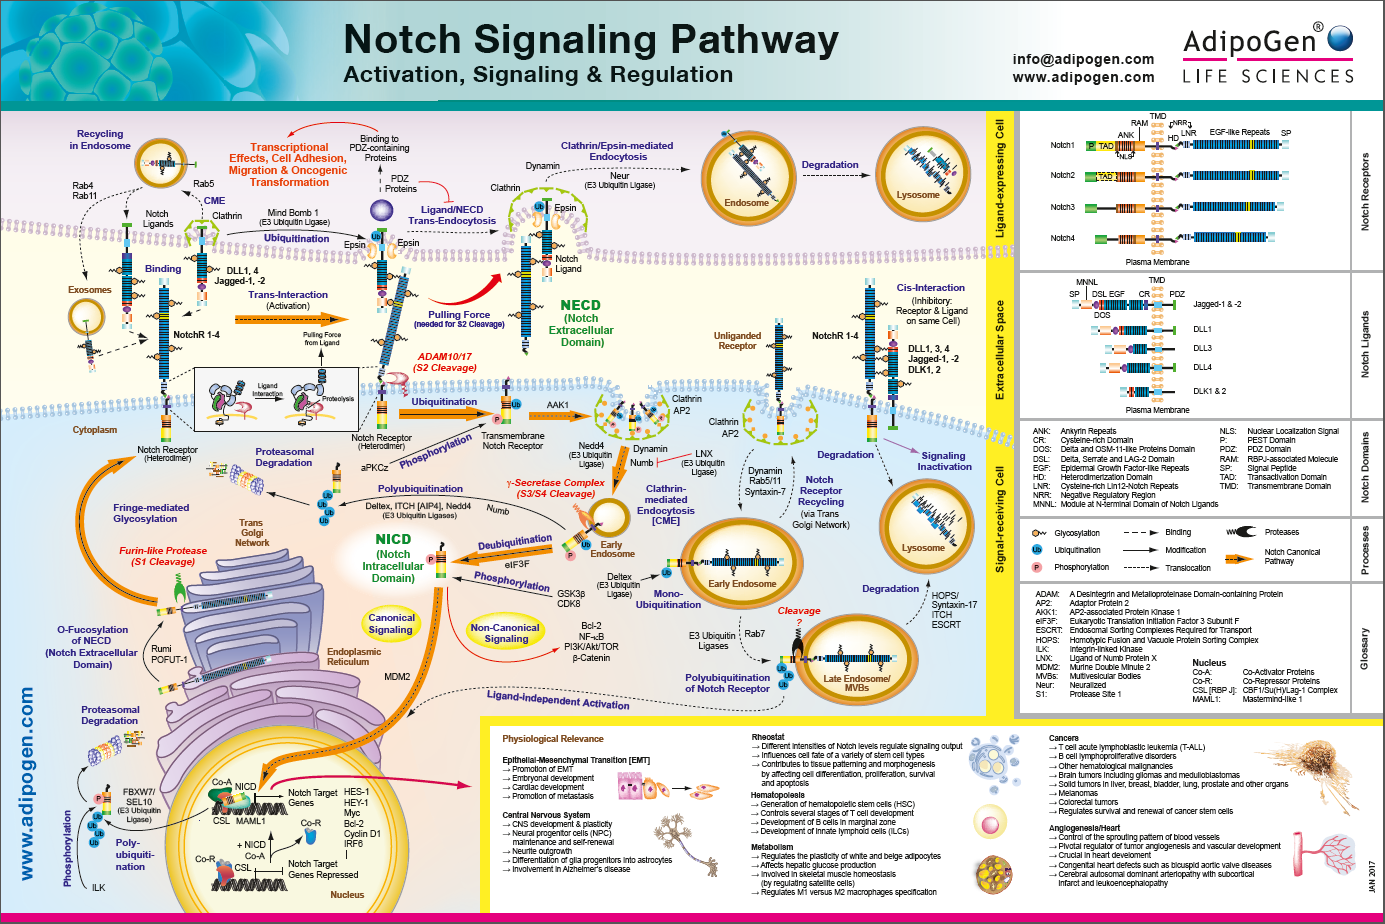 Notch Signaling Pathways Wallchart 2017